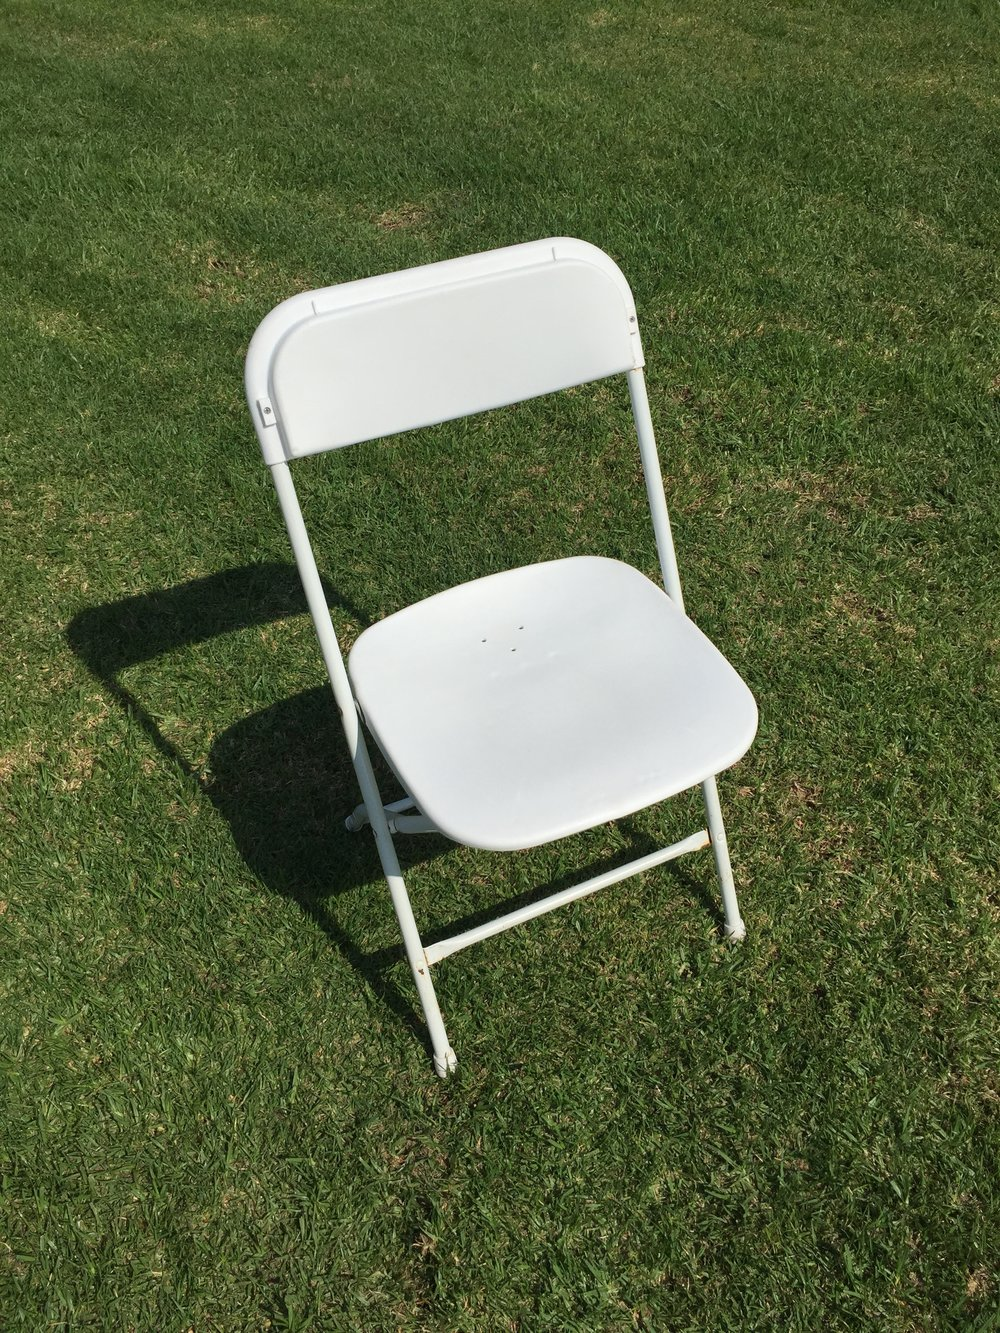 White-Plastic-Folding-Chair-1-300x225.jpg